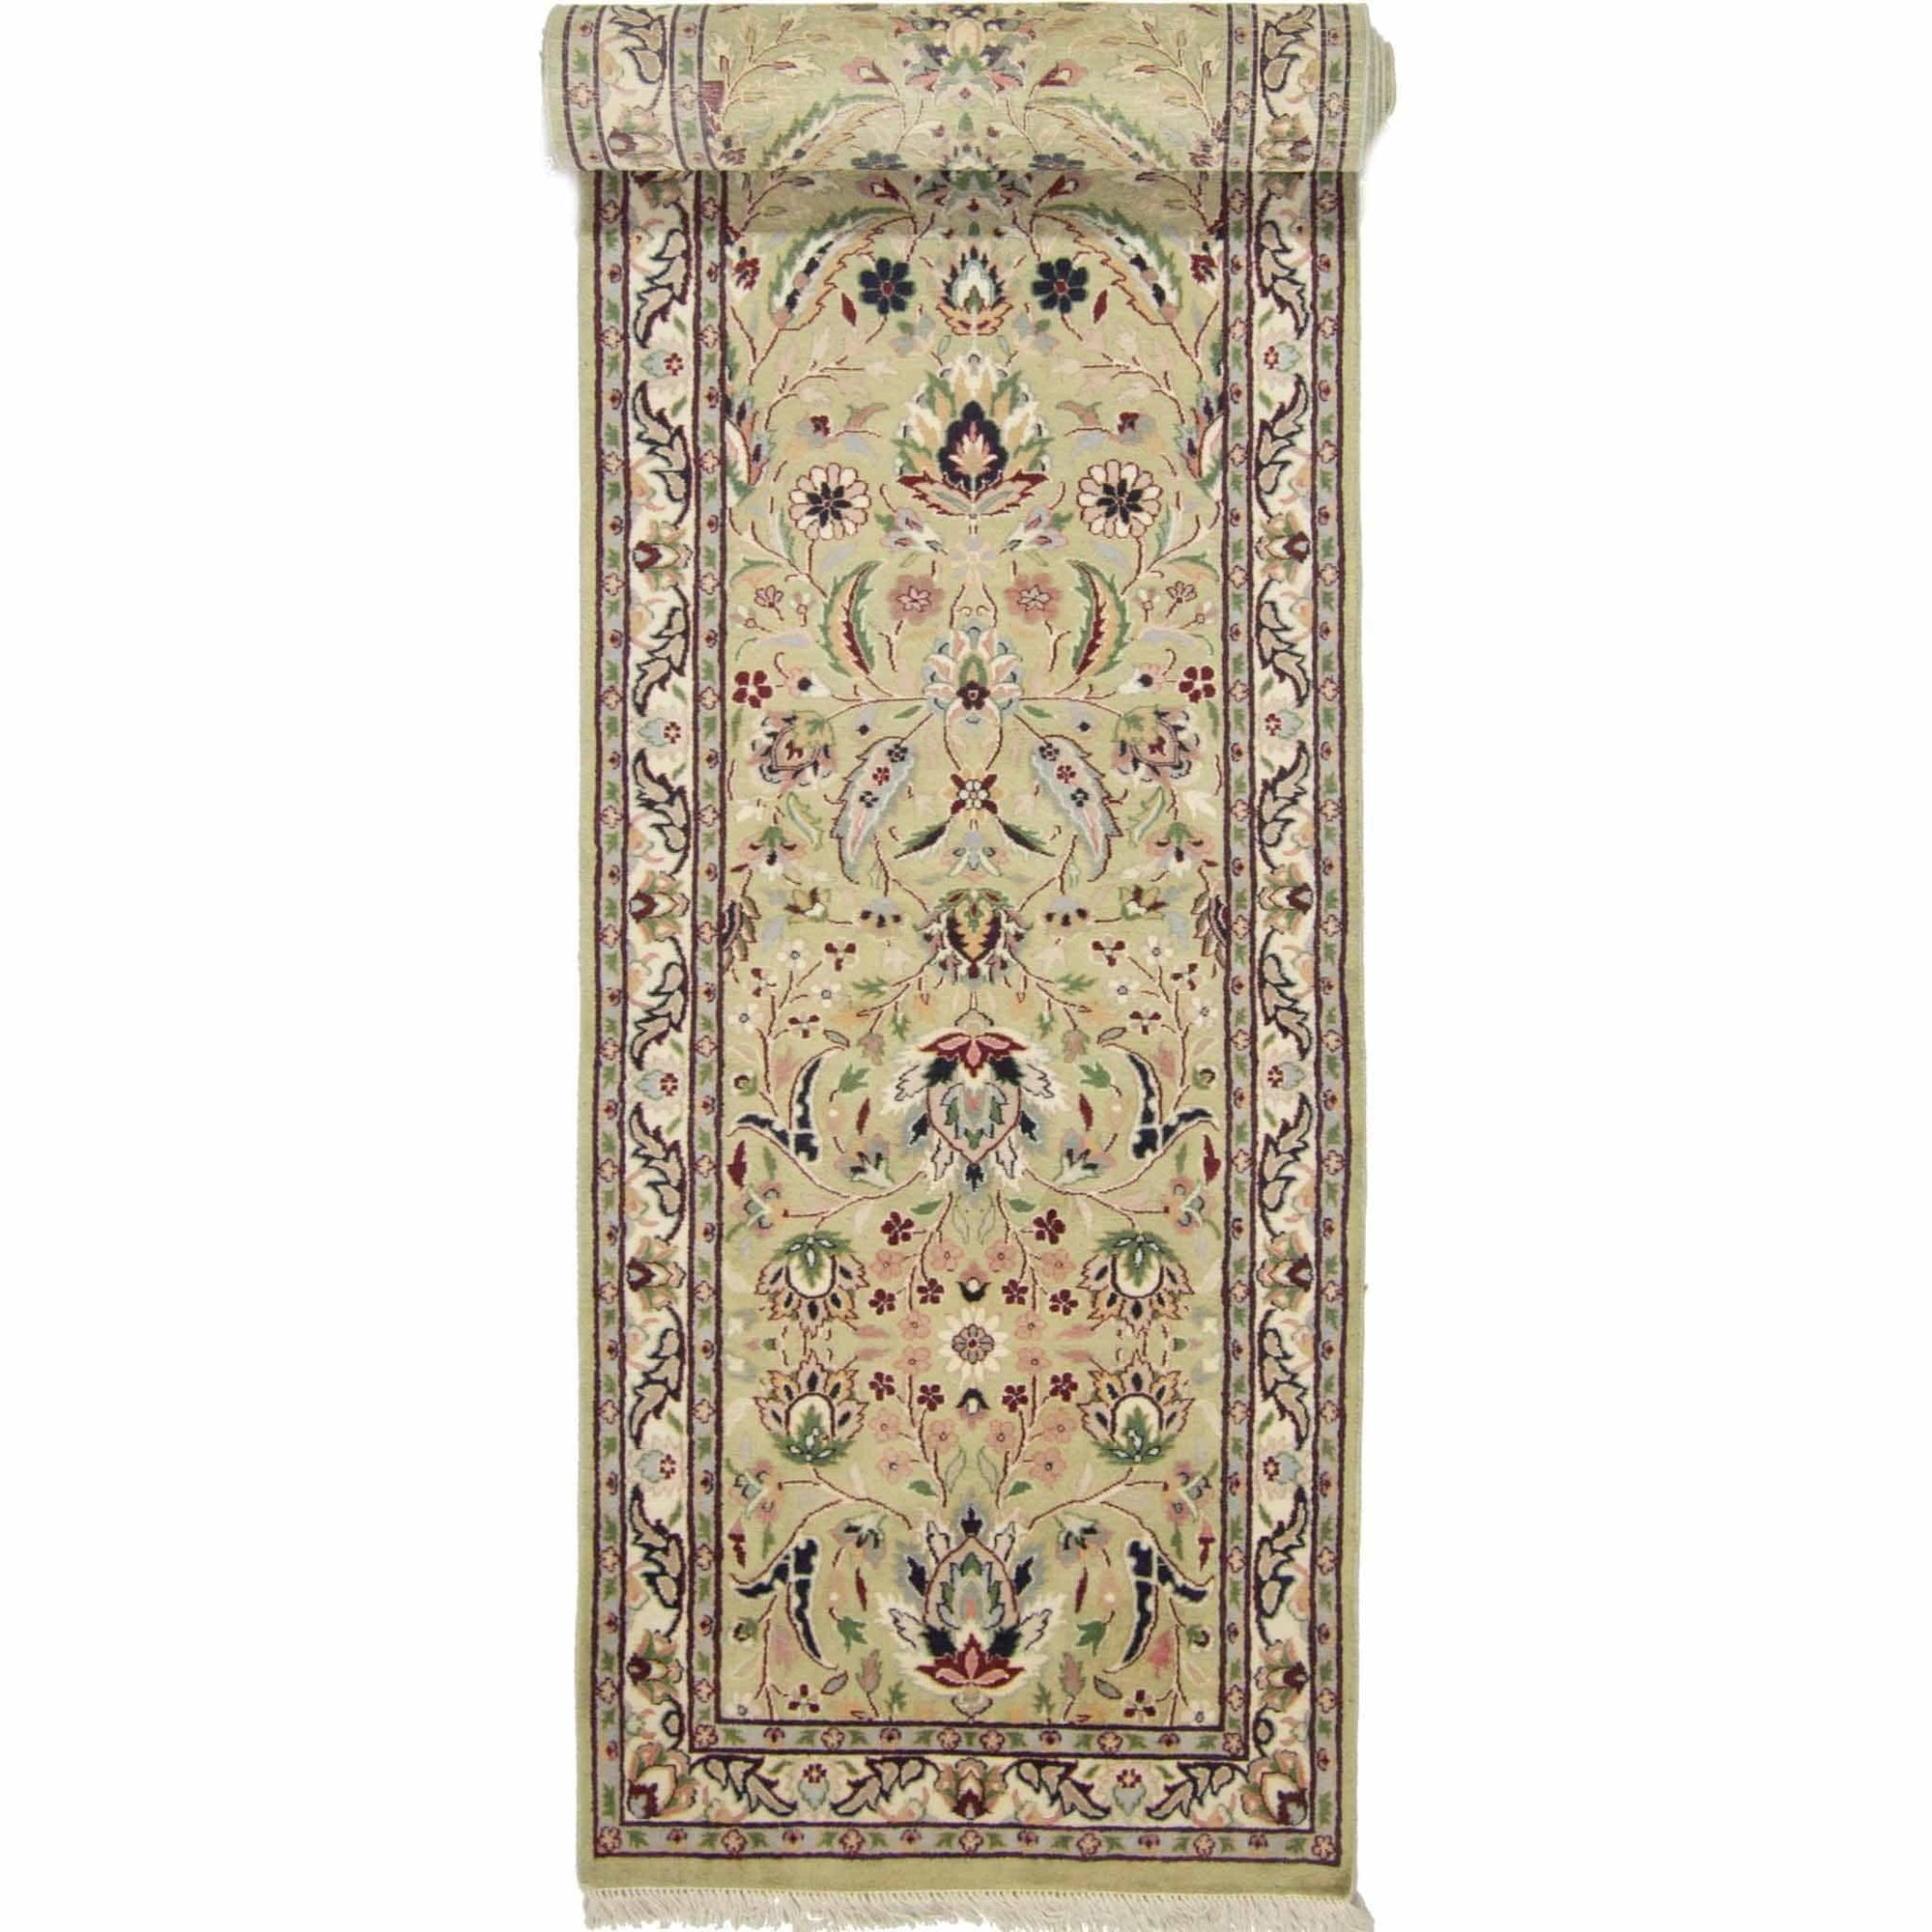 Fine Hand-knotted Kashan Runner 76cm x 370cm Persian-Rug | House-of-Haghi | NewMarket | Auckland | NZ | Handmade Persian Rugs | Hand Knotted Persian Rugs